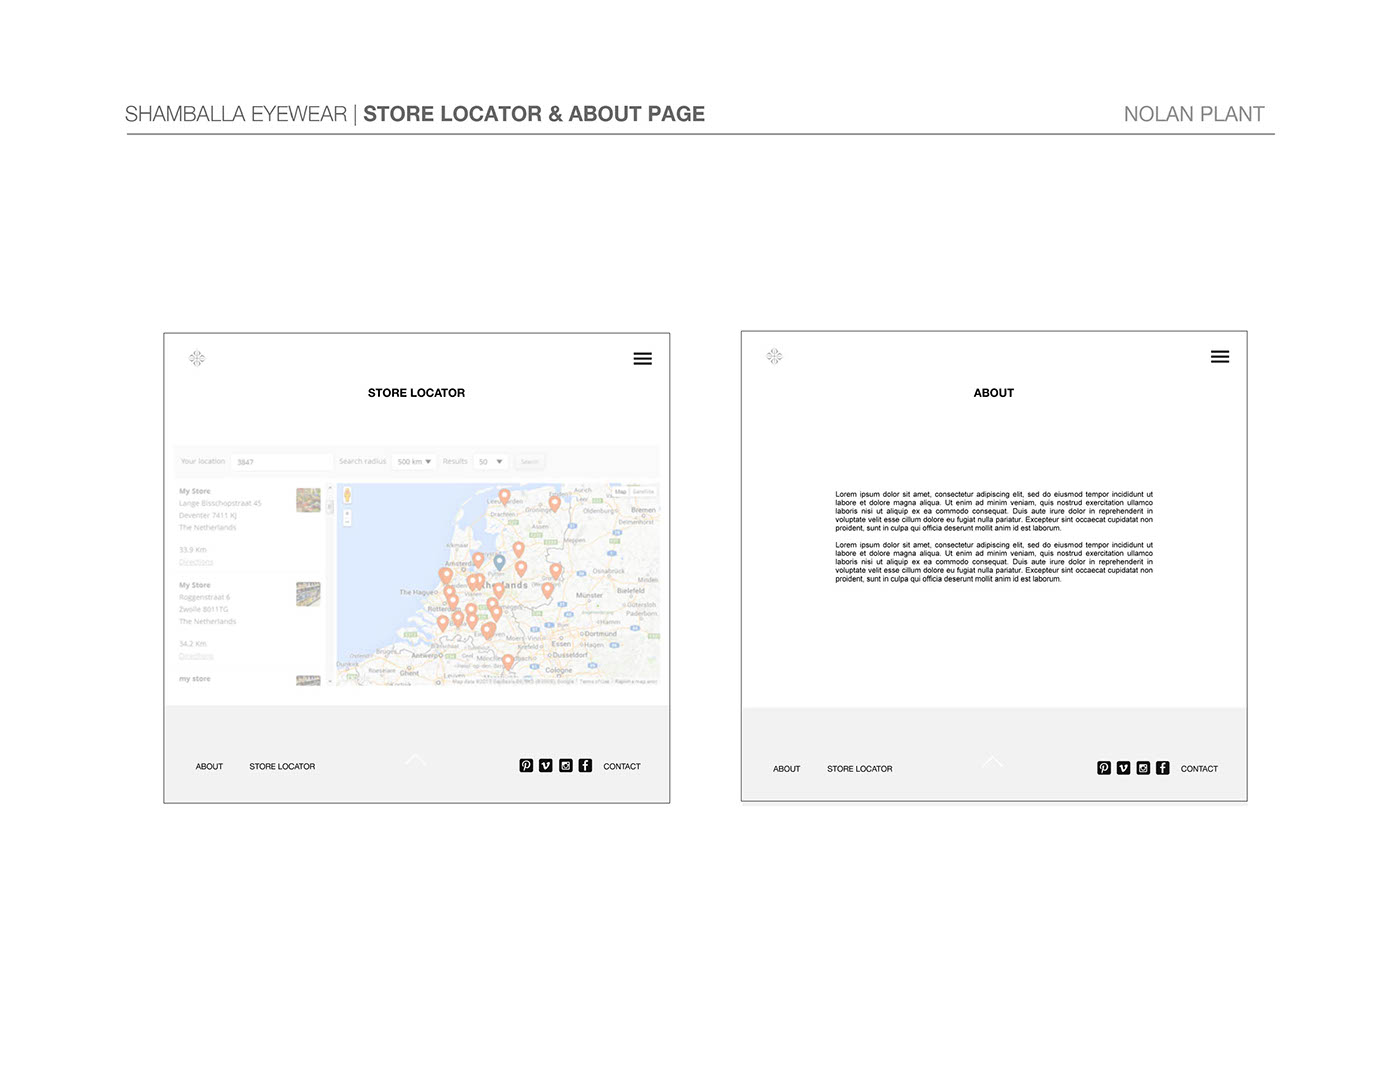 Sitemap about page